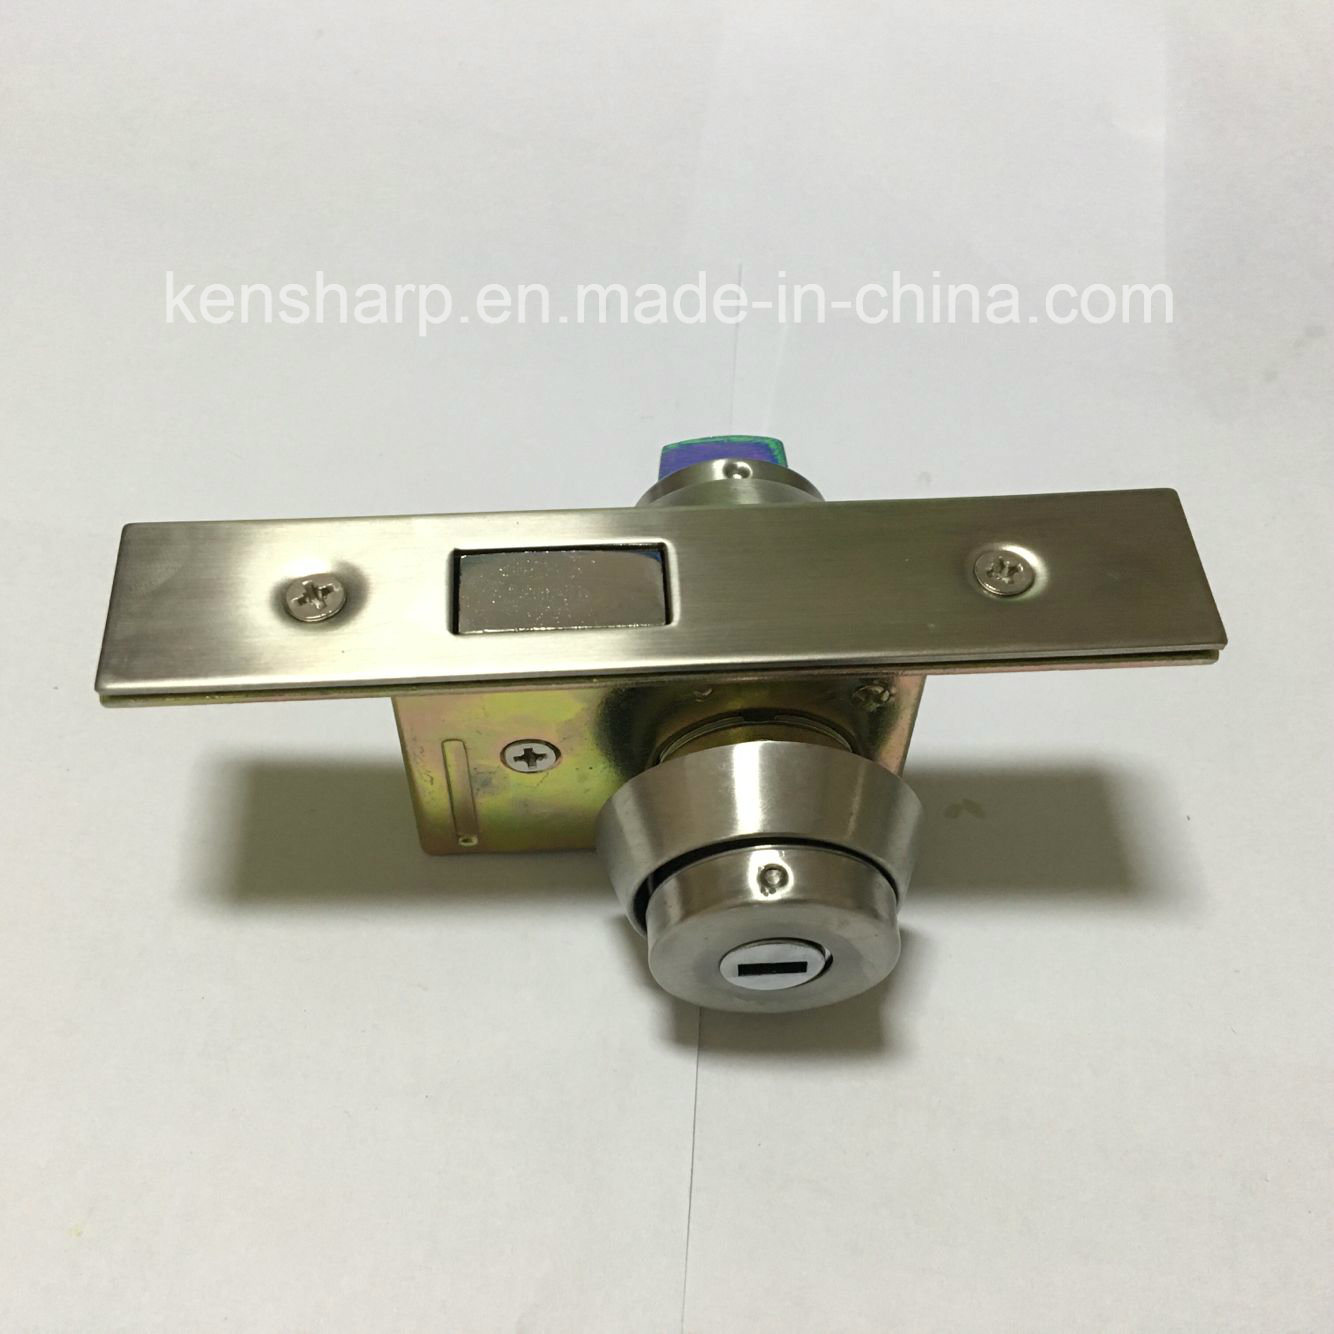 302 Profile Round Solid Lock and Security Solid Lock for Interior